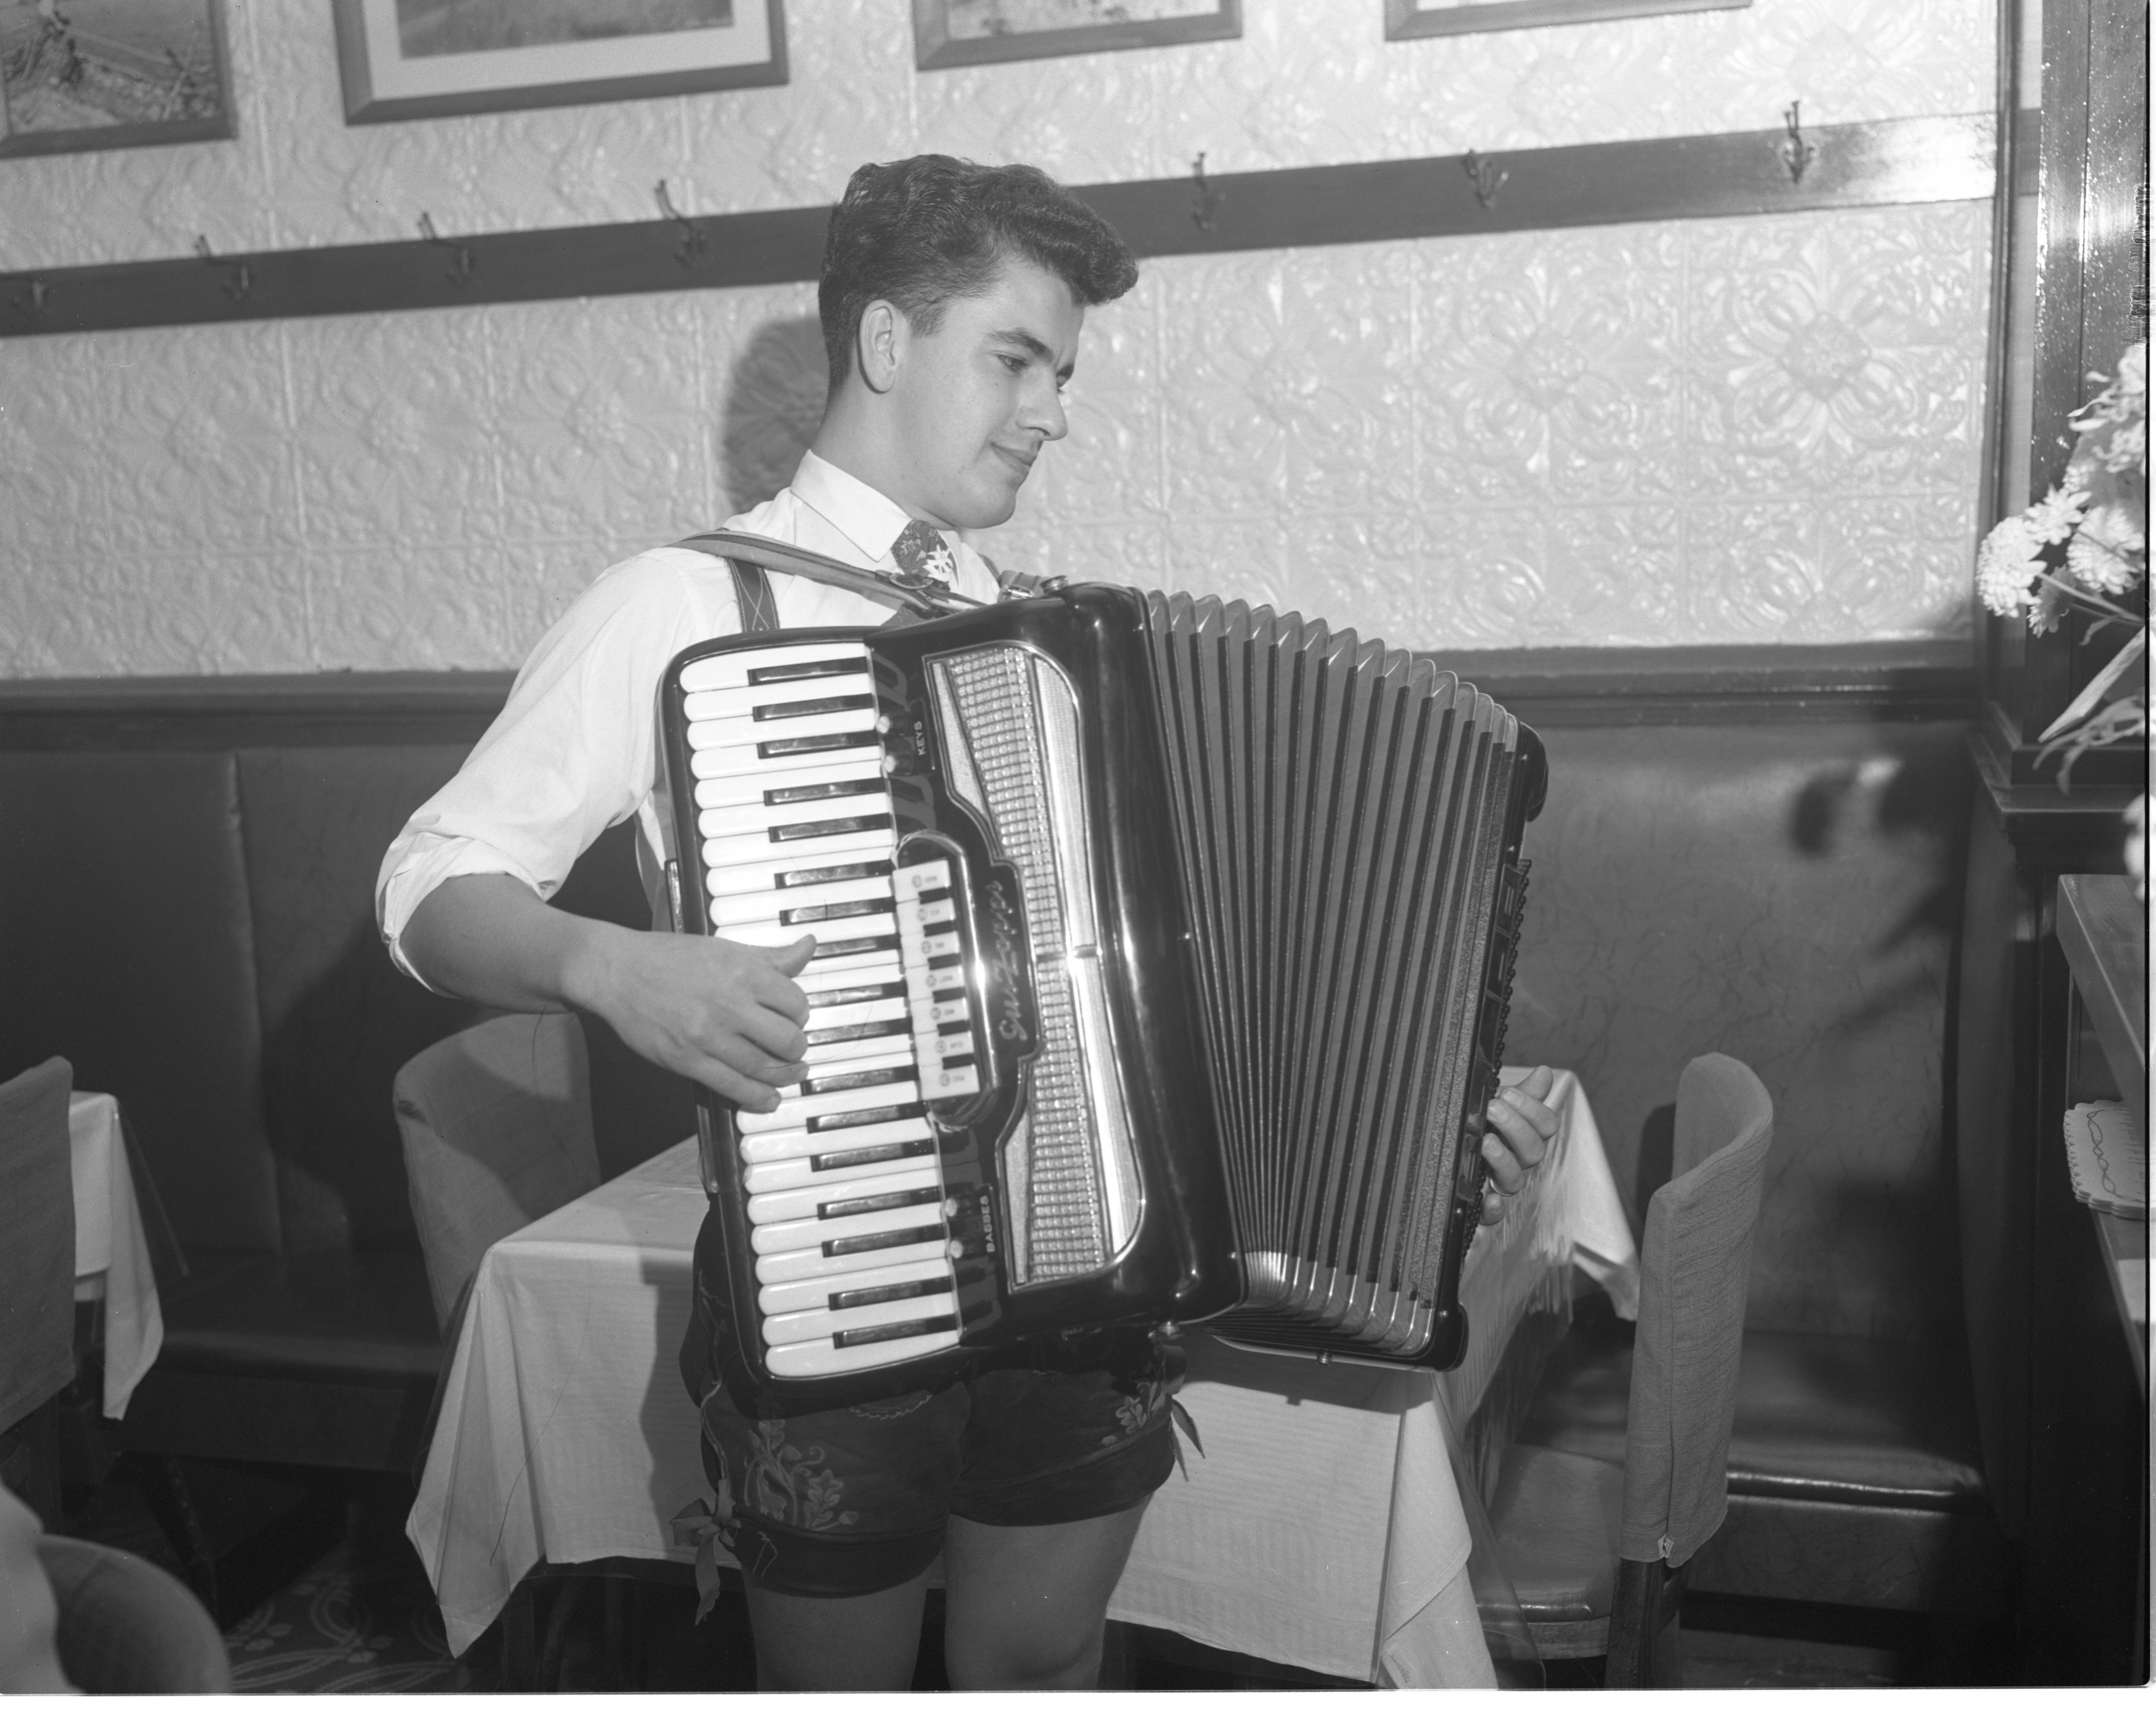 Adam Kryczkowski Plays Accordion At Haab's Restaurant - November 1961 image